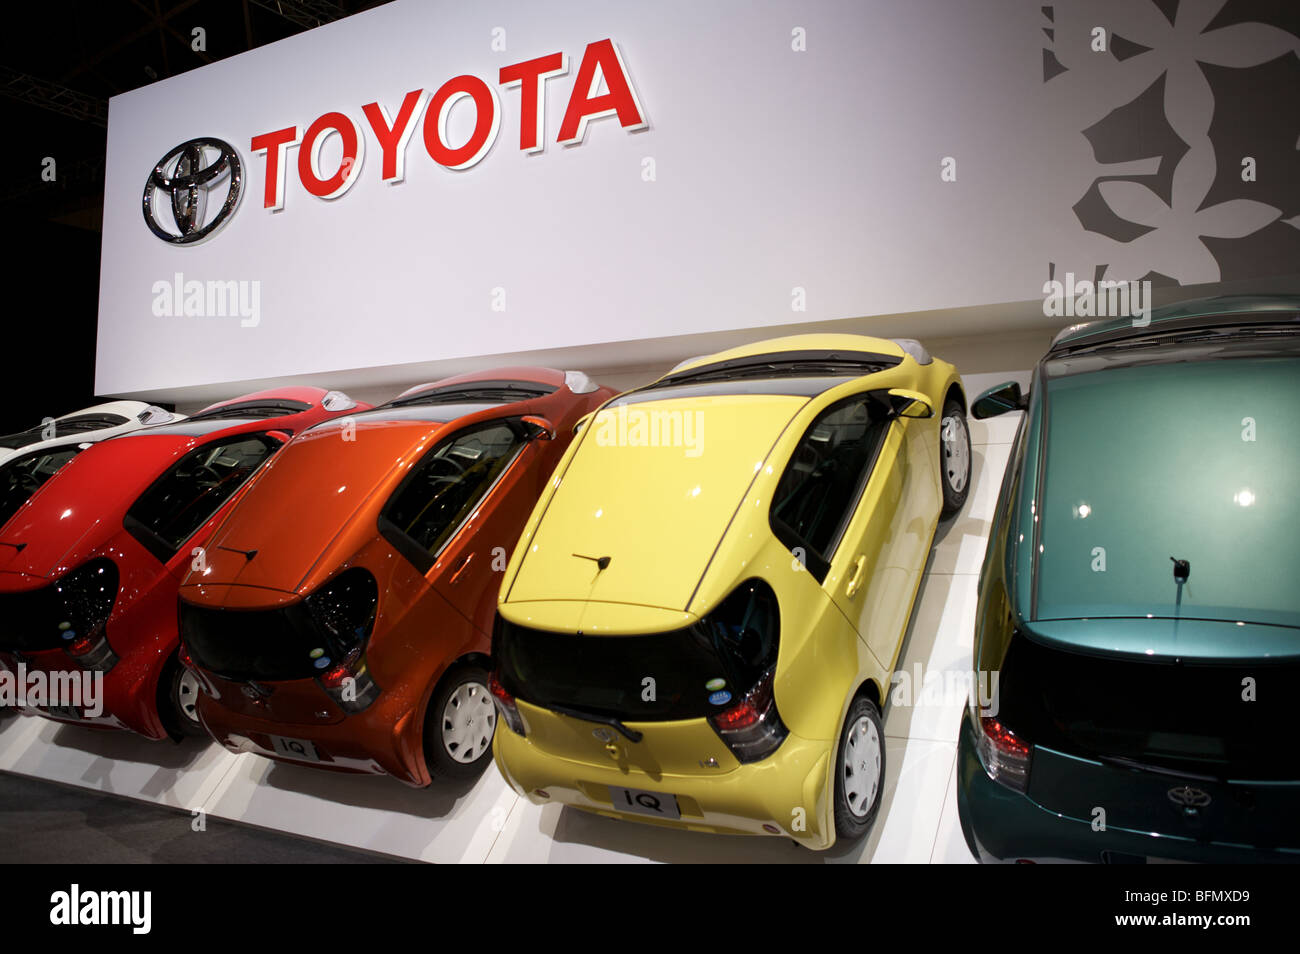 Toyota cars are displayed at the 2009 Tokyo motorshow. - Stock Image